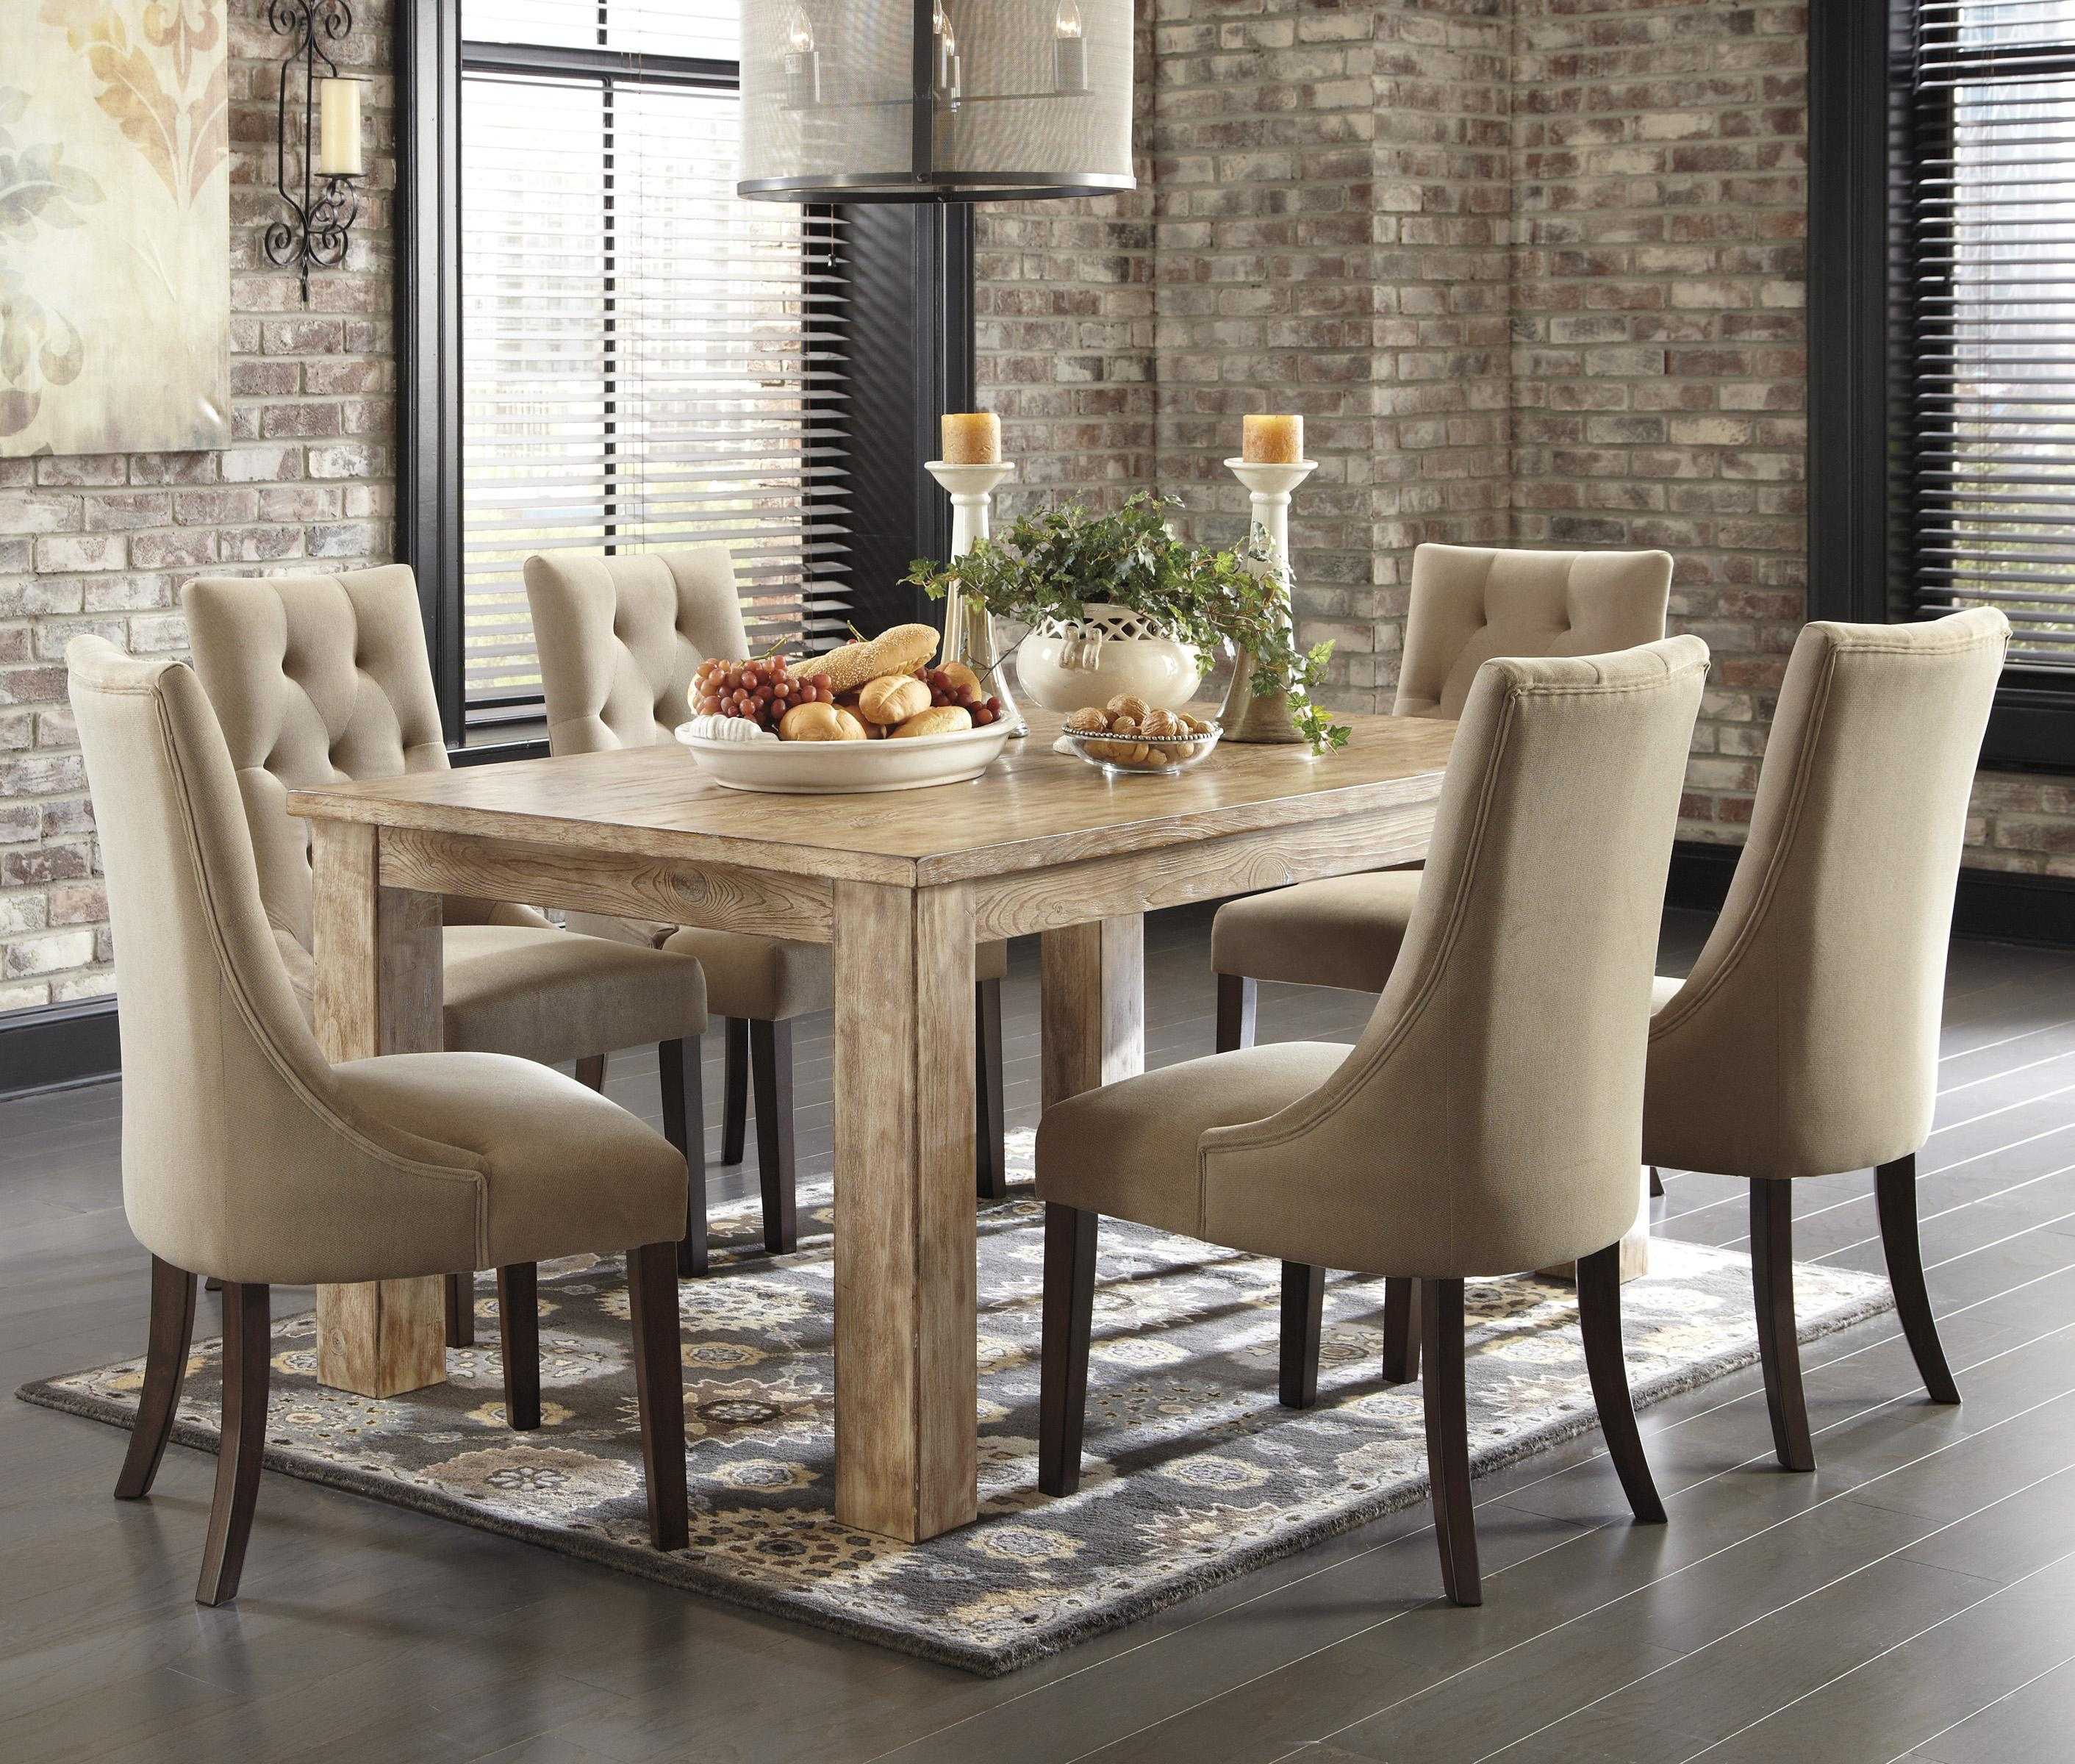 Superieur Signature Design By Ashley Mestler 7 Piece Dining Set With Upholstered  Chairs   Item Number